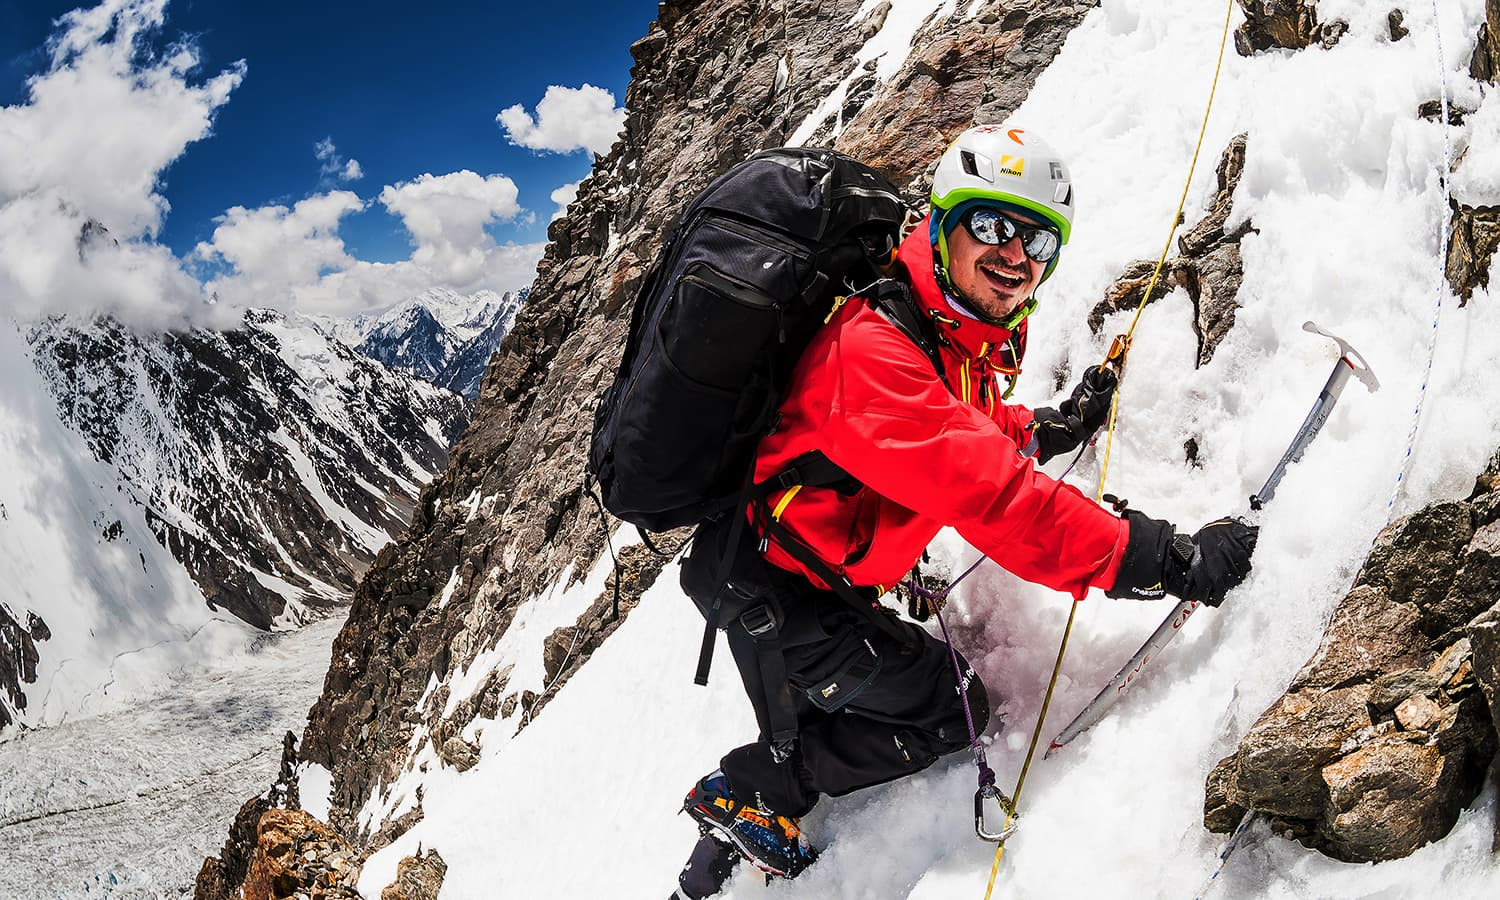 Petr climbing K2. The photographer joined Klára Kolouchová's team in the hopes of capturing photos at the highest level possible. — Photo by Petr Jan Juračka